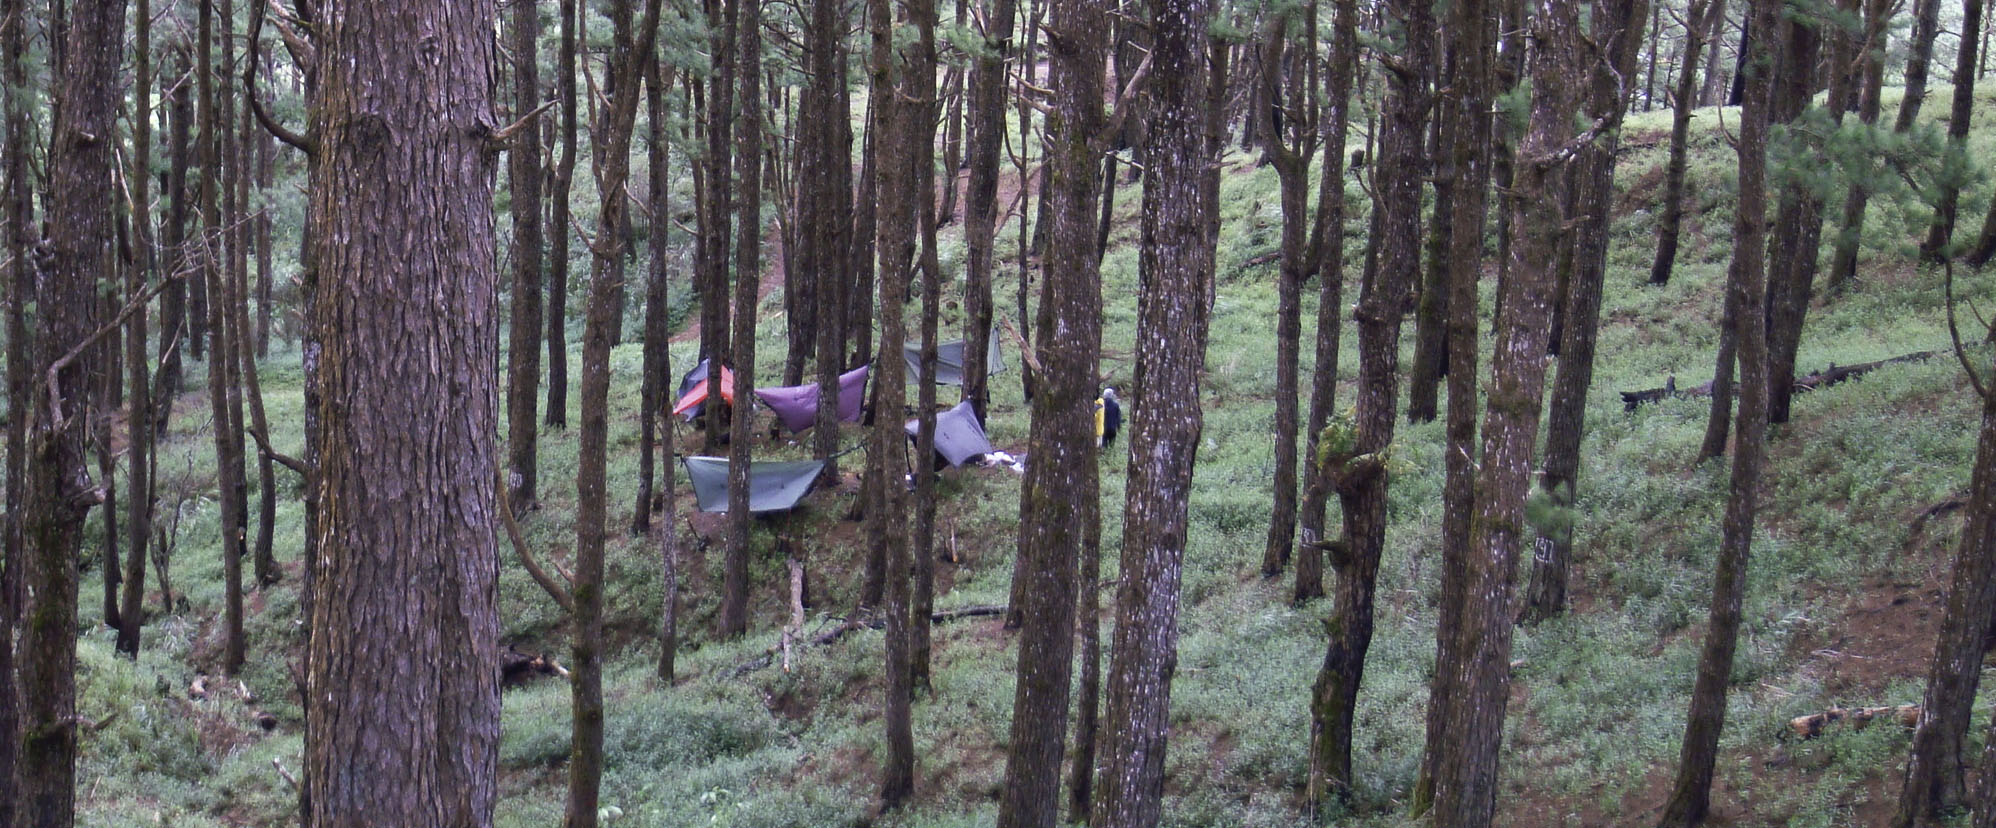 Pine Forest Hang 4 - Philippines